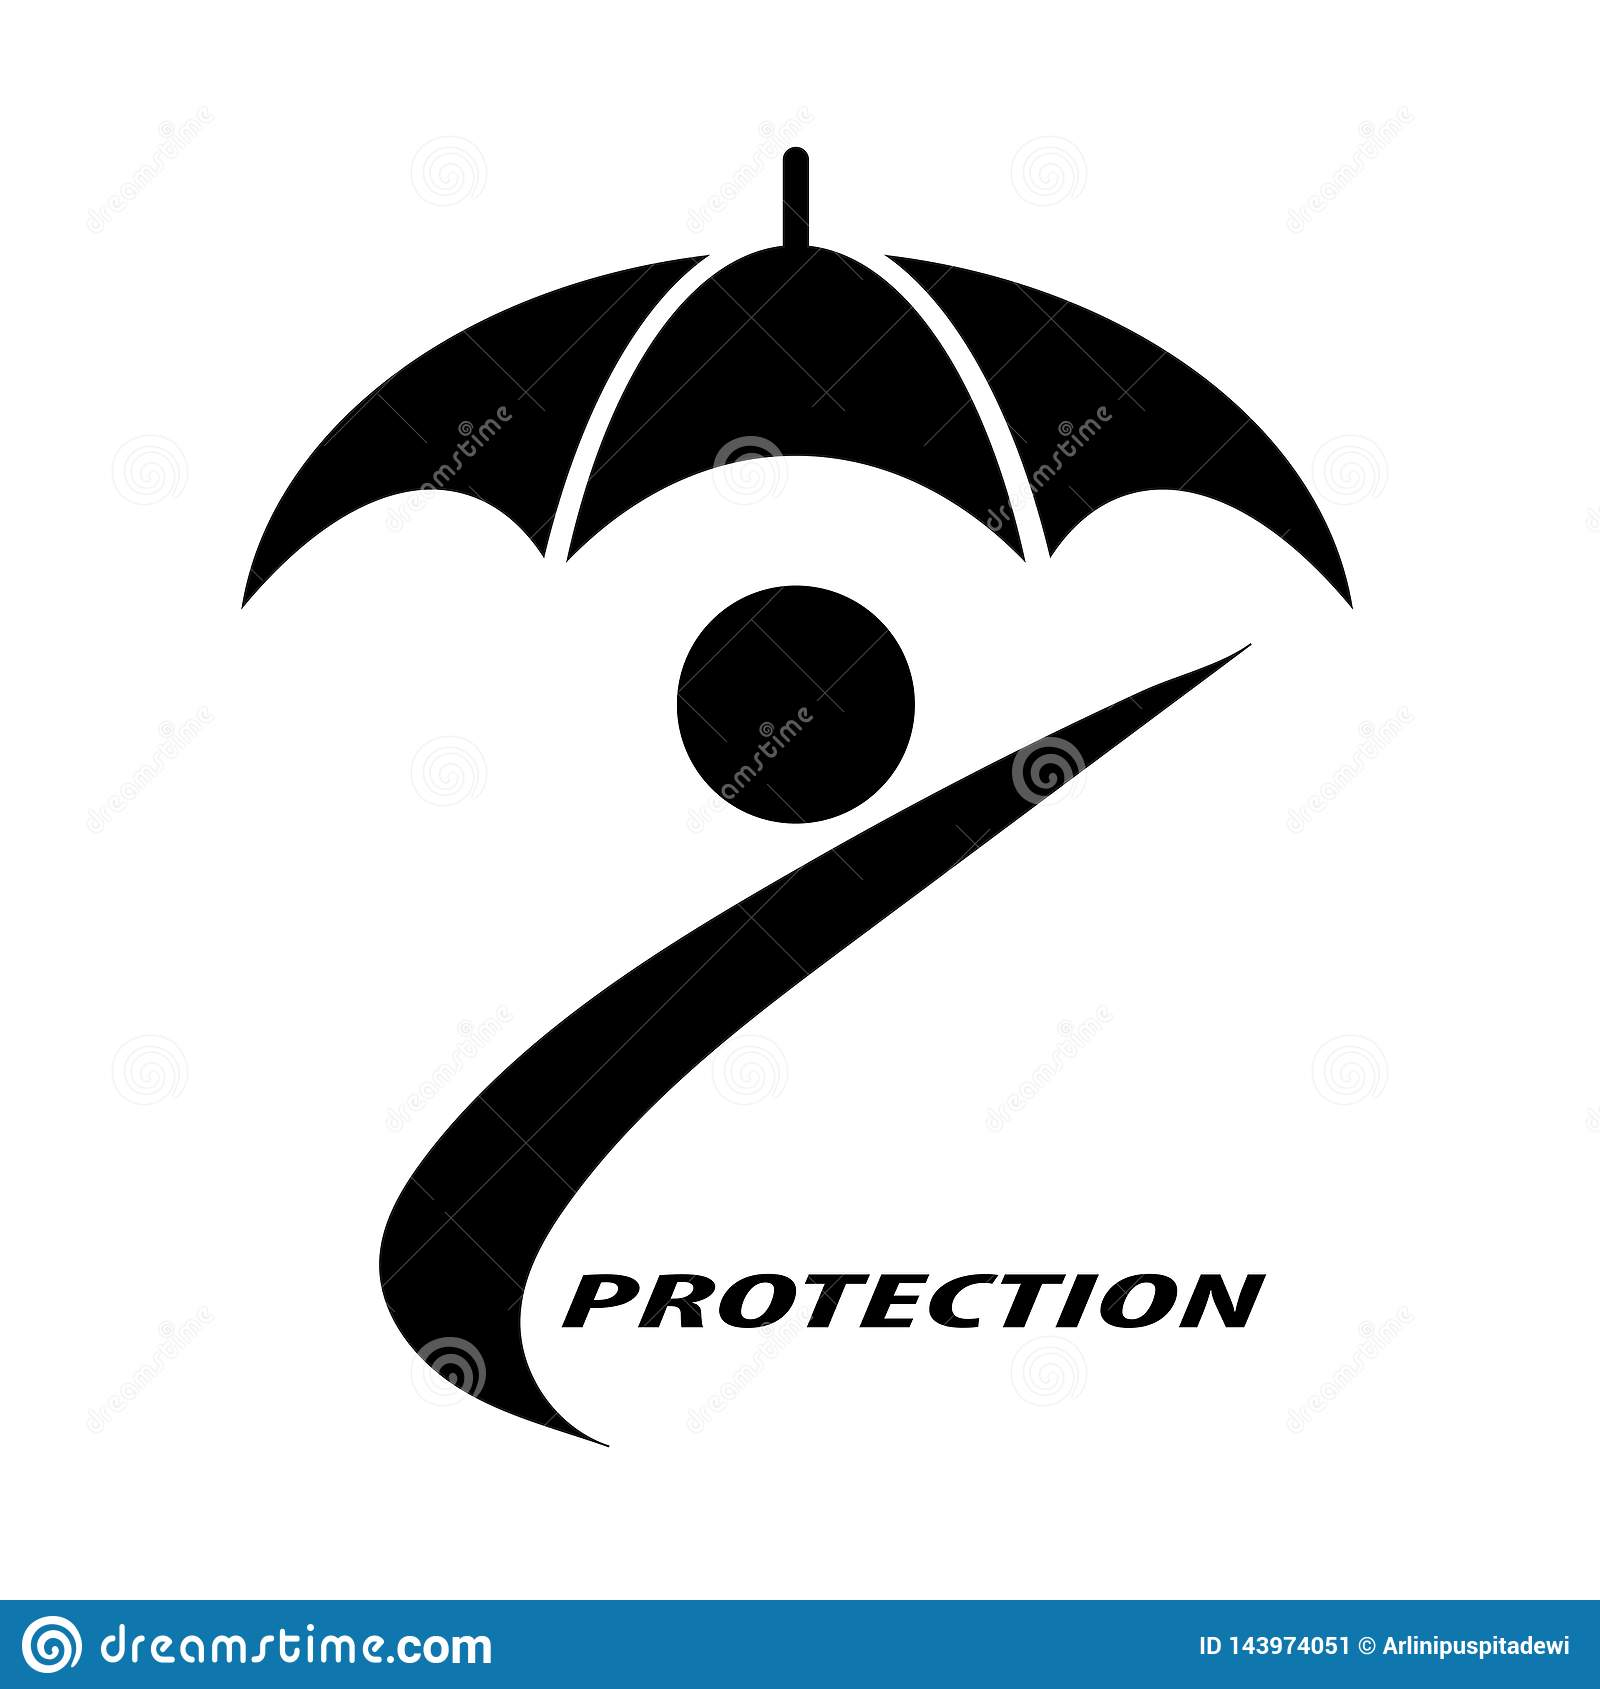 People and umbrellas that symbolize insurance protection for individuals